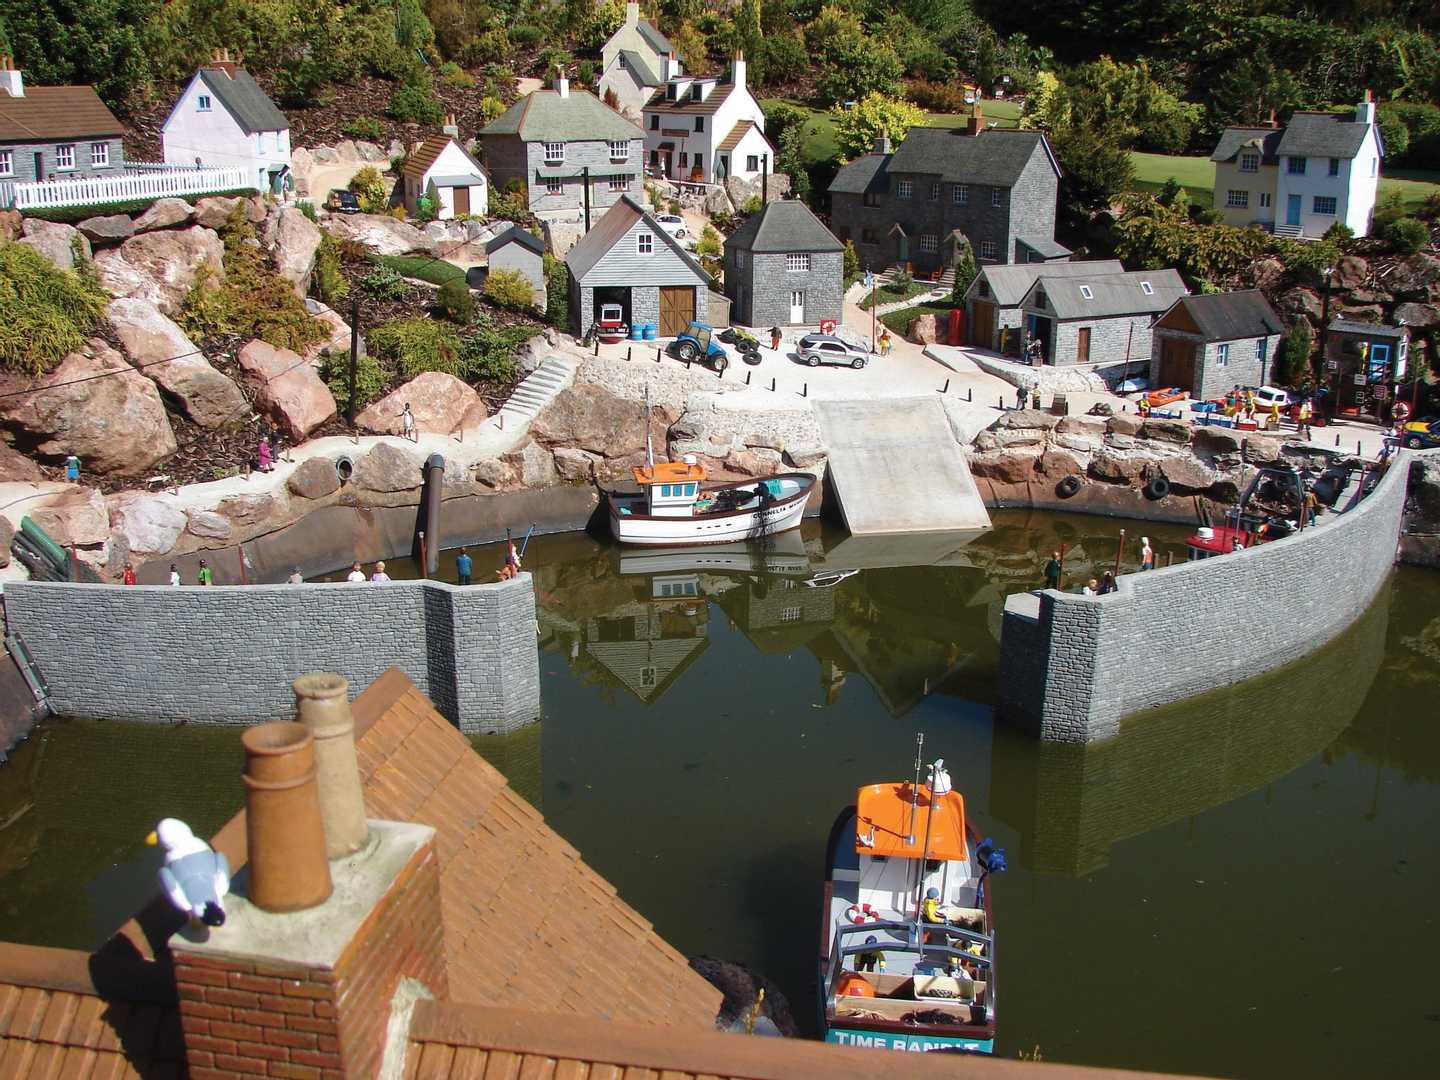 A fishing village at Babbacombe Model Village